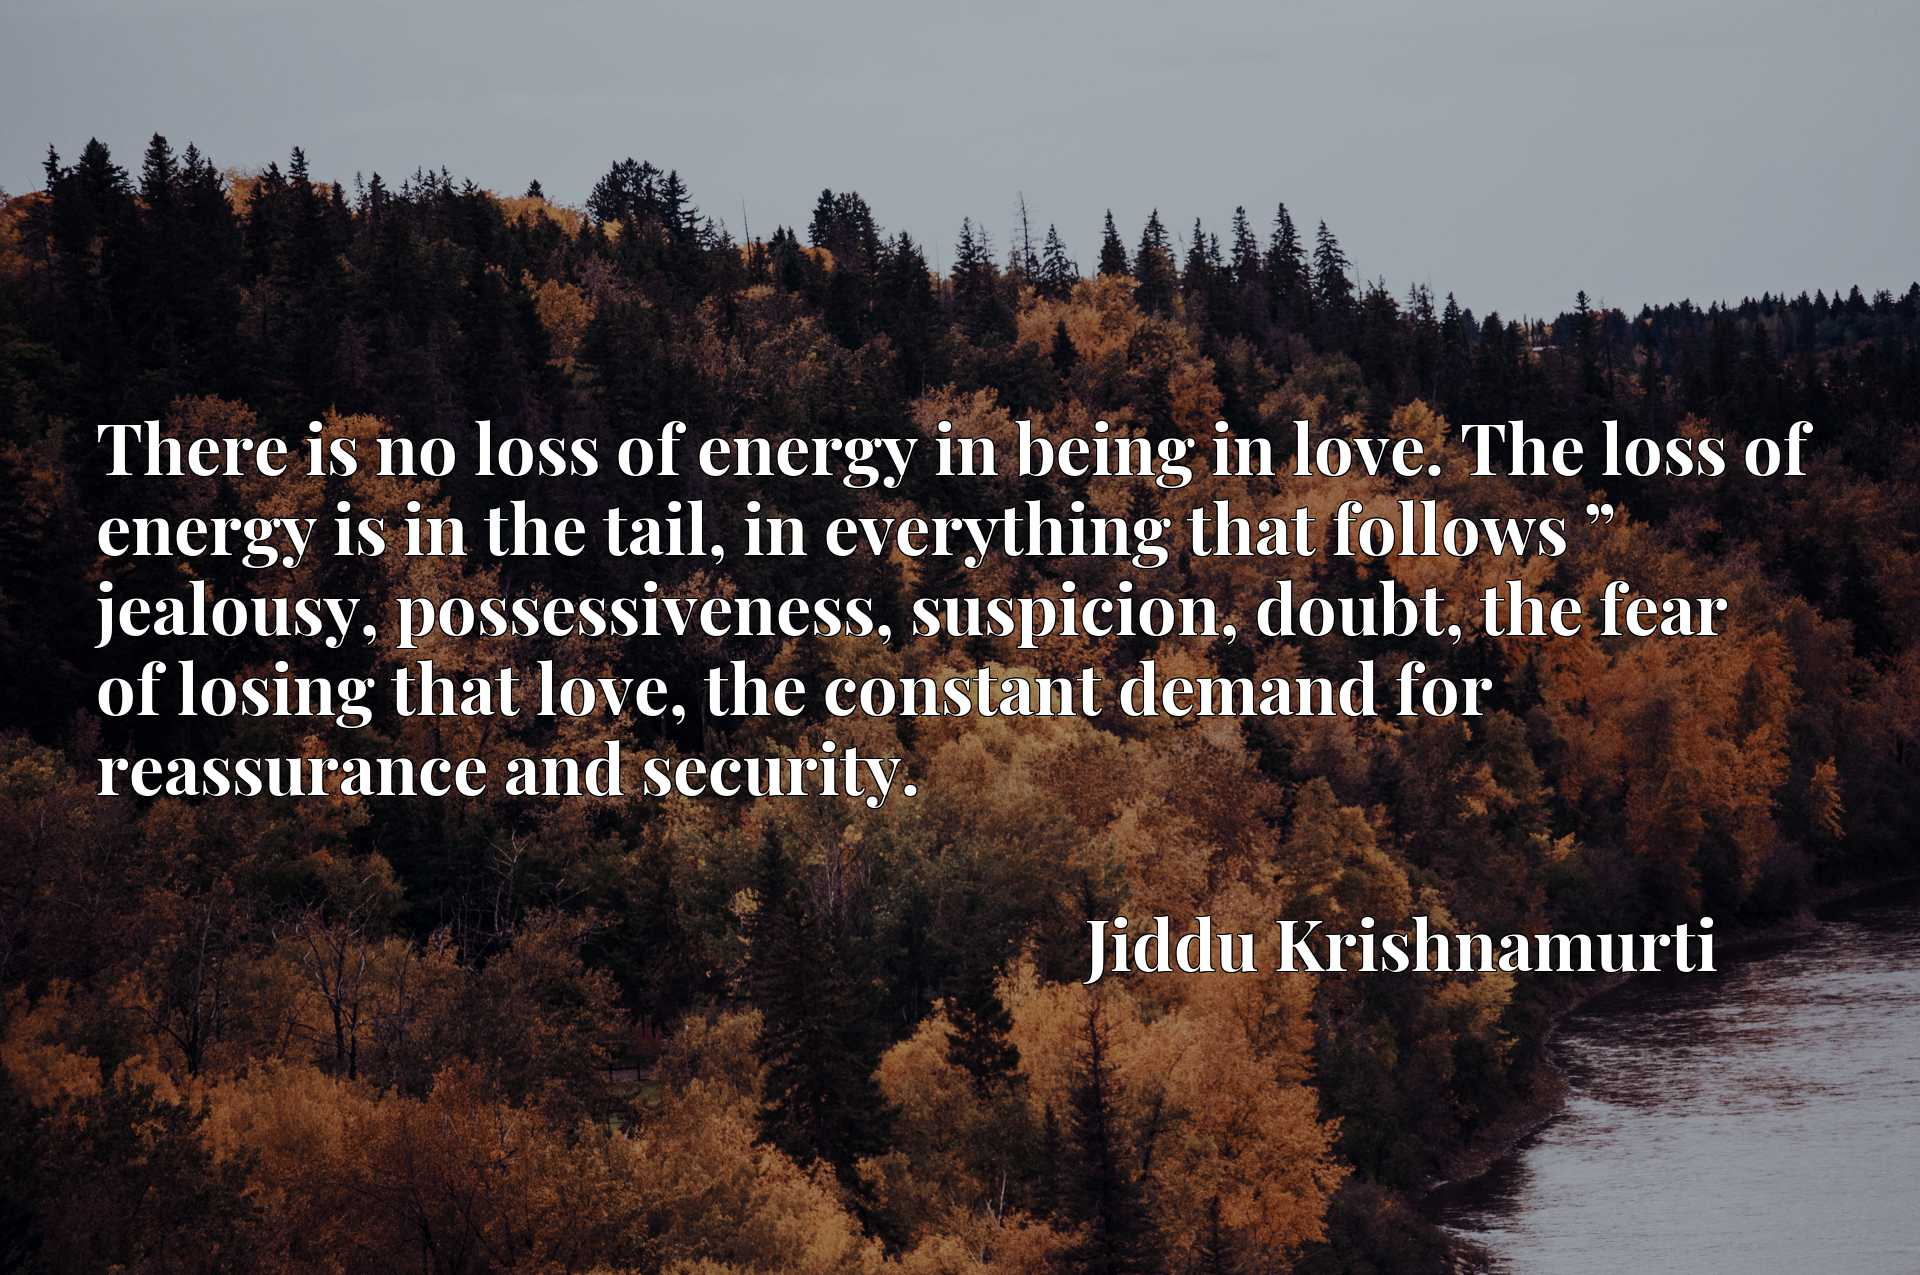 """There is no loss of energy in being in love. The loss of energy is in the tail, in everything that follows """" jealousy, possessiveness, suspicion, doubt, the fear of losing that love, the constant demand for reassurance and security."""